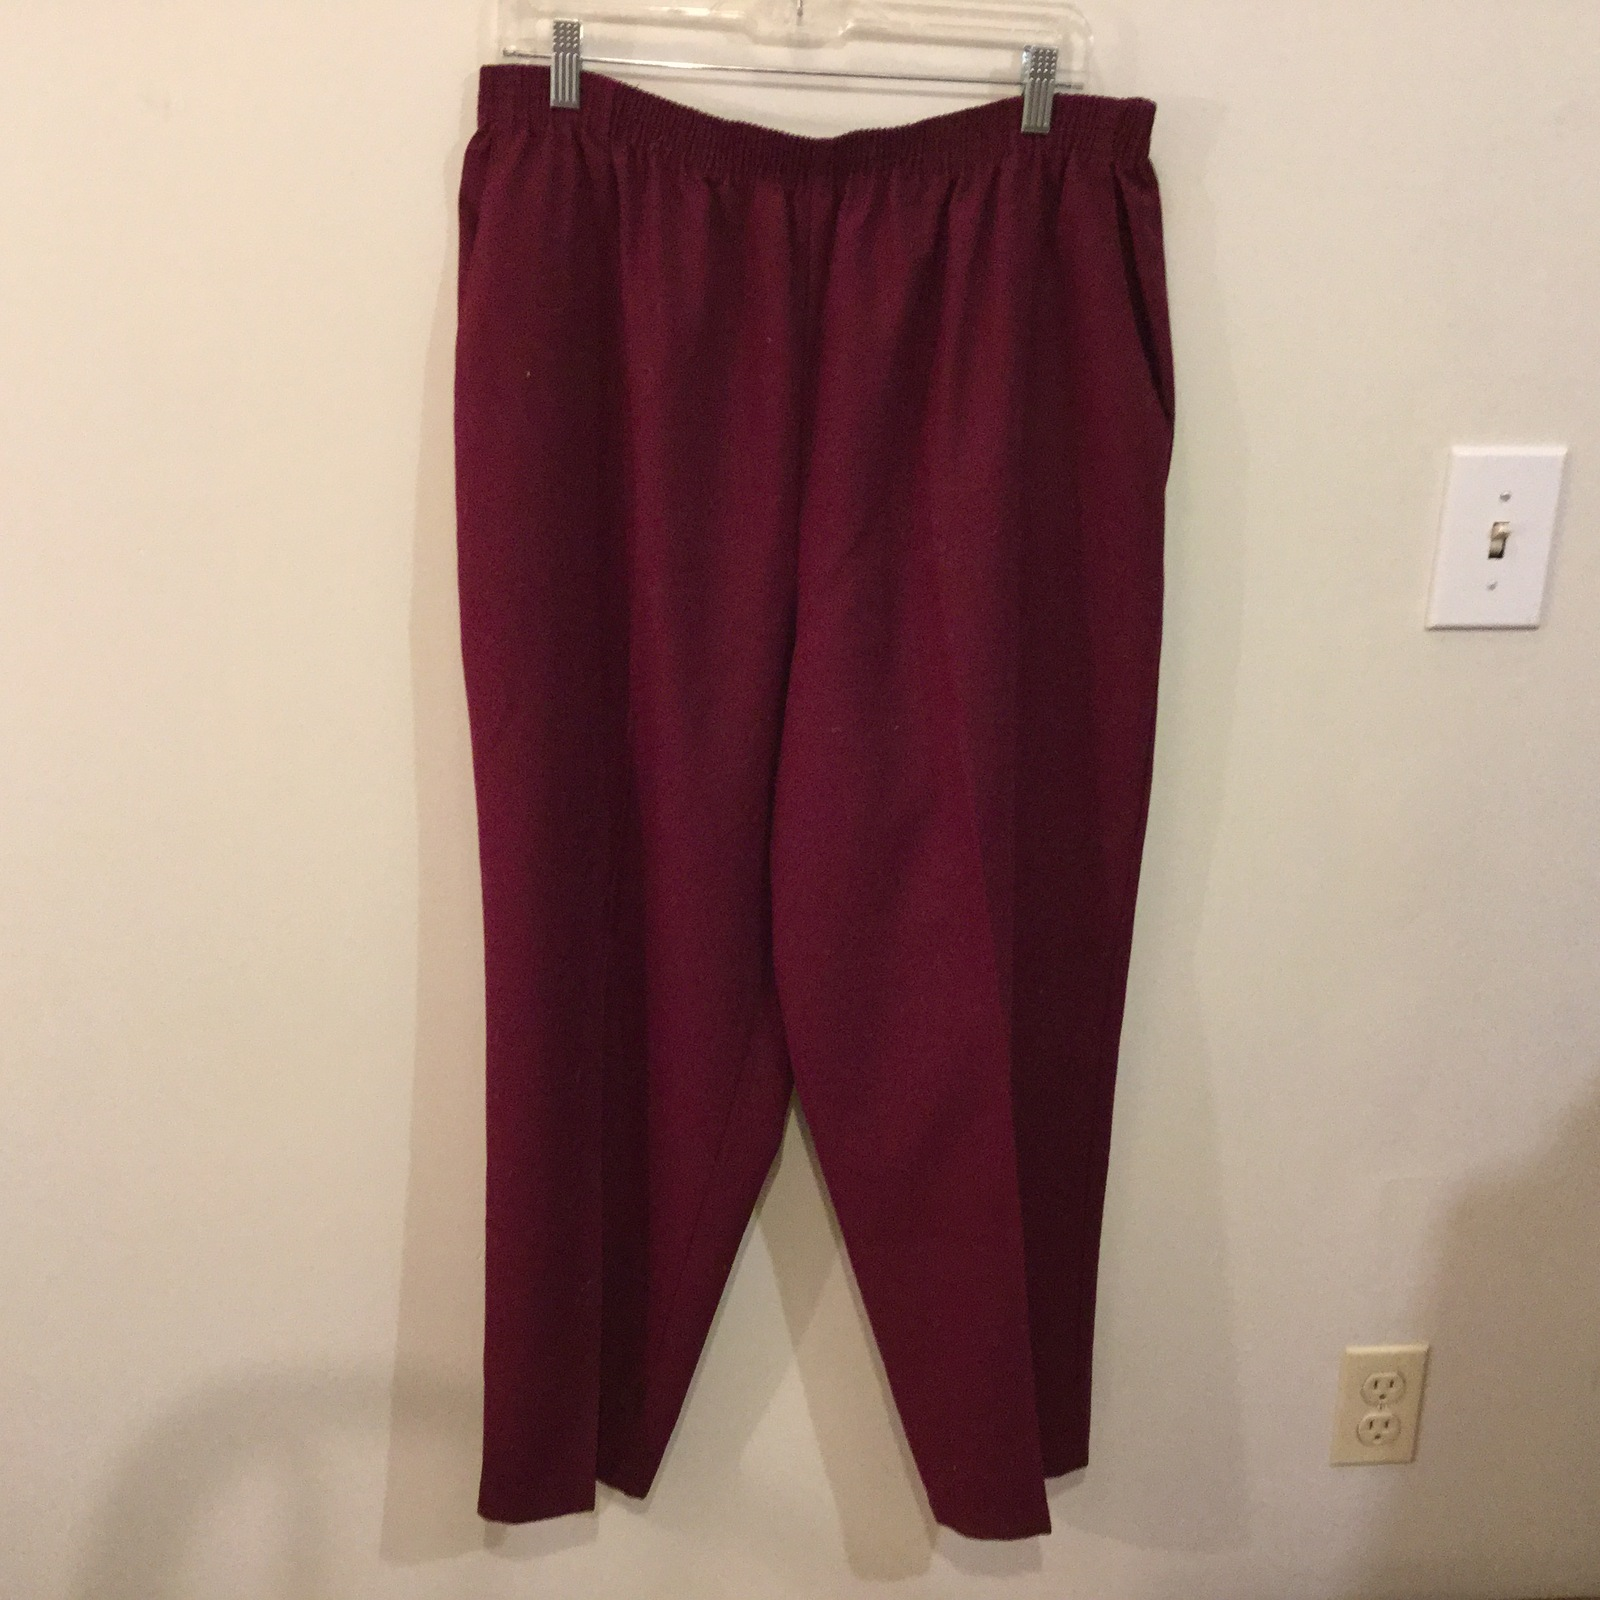 Briggs Maroon 100% Polyester Elastic Waist Pants, size 20W